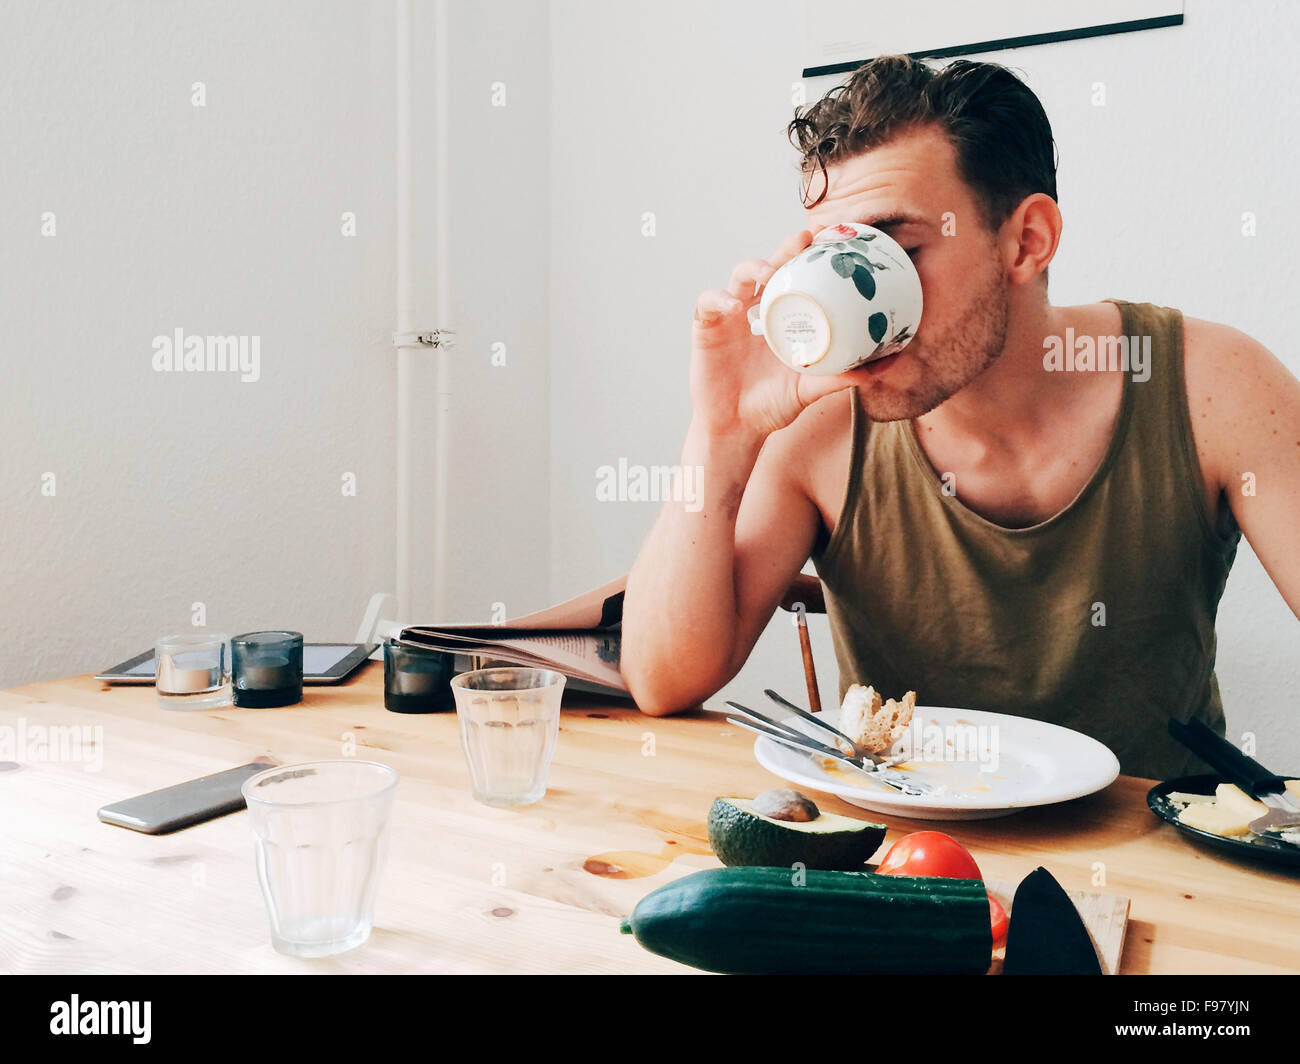 Man Drinking Coffee By Messy Table Stock Photo